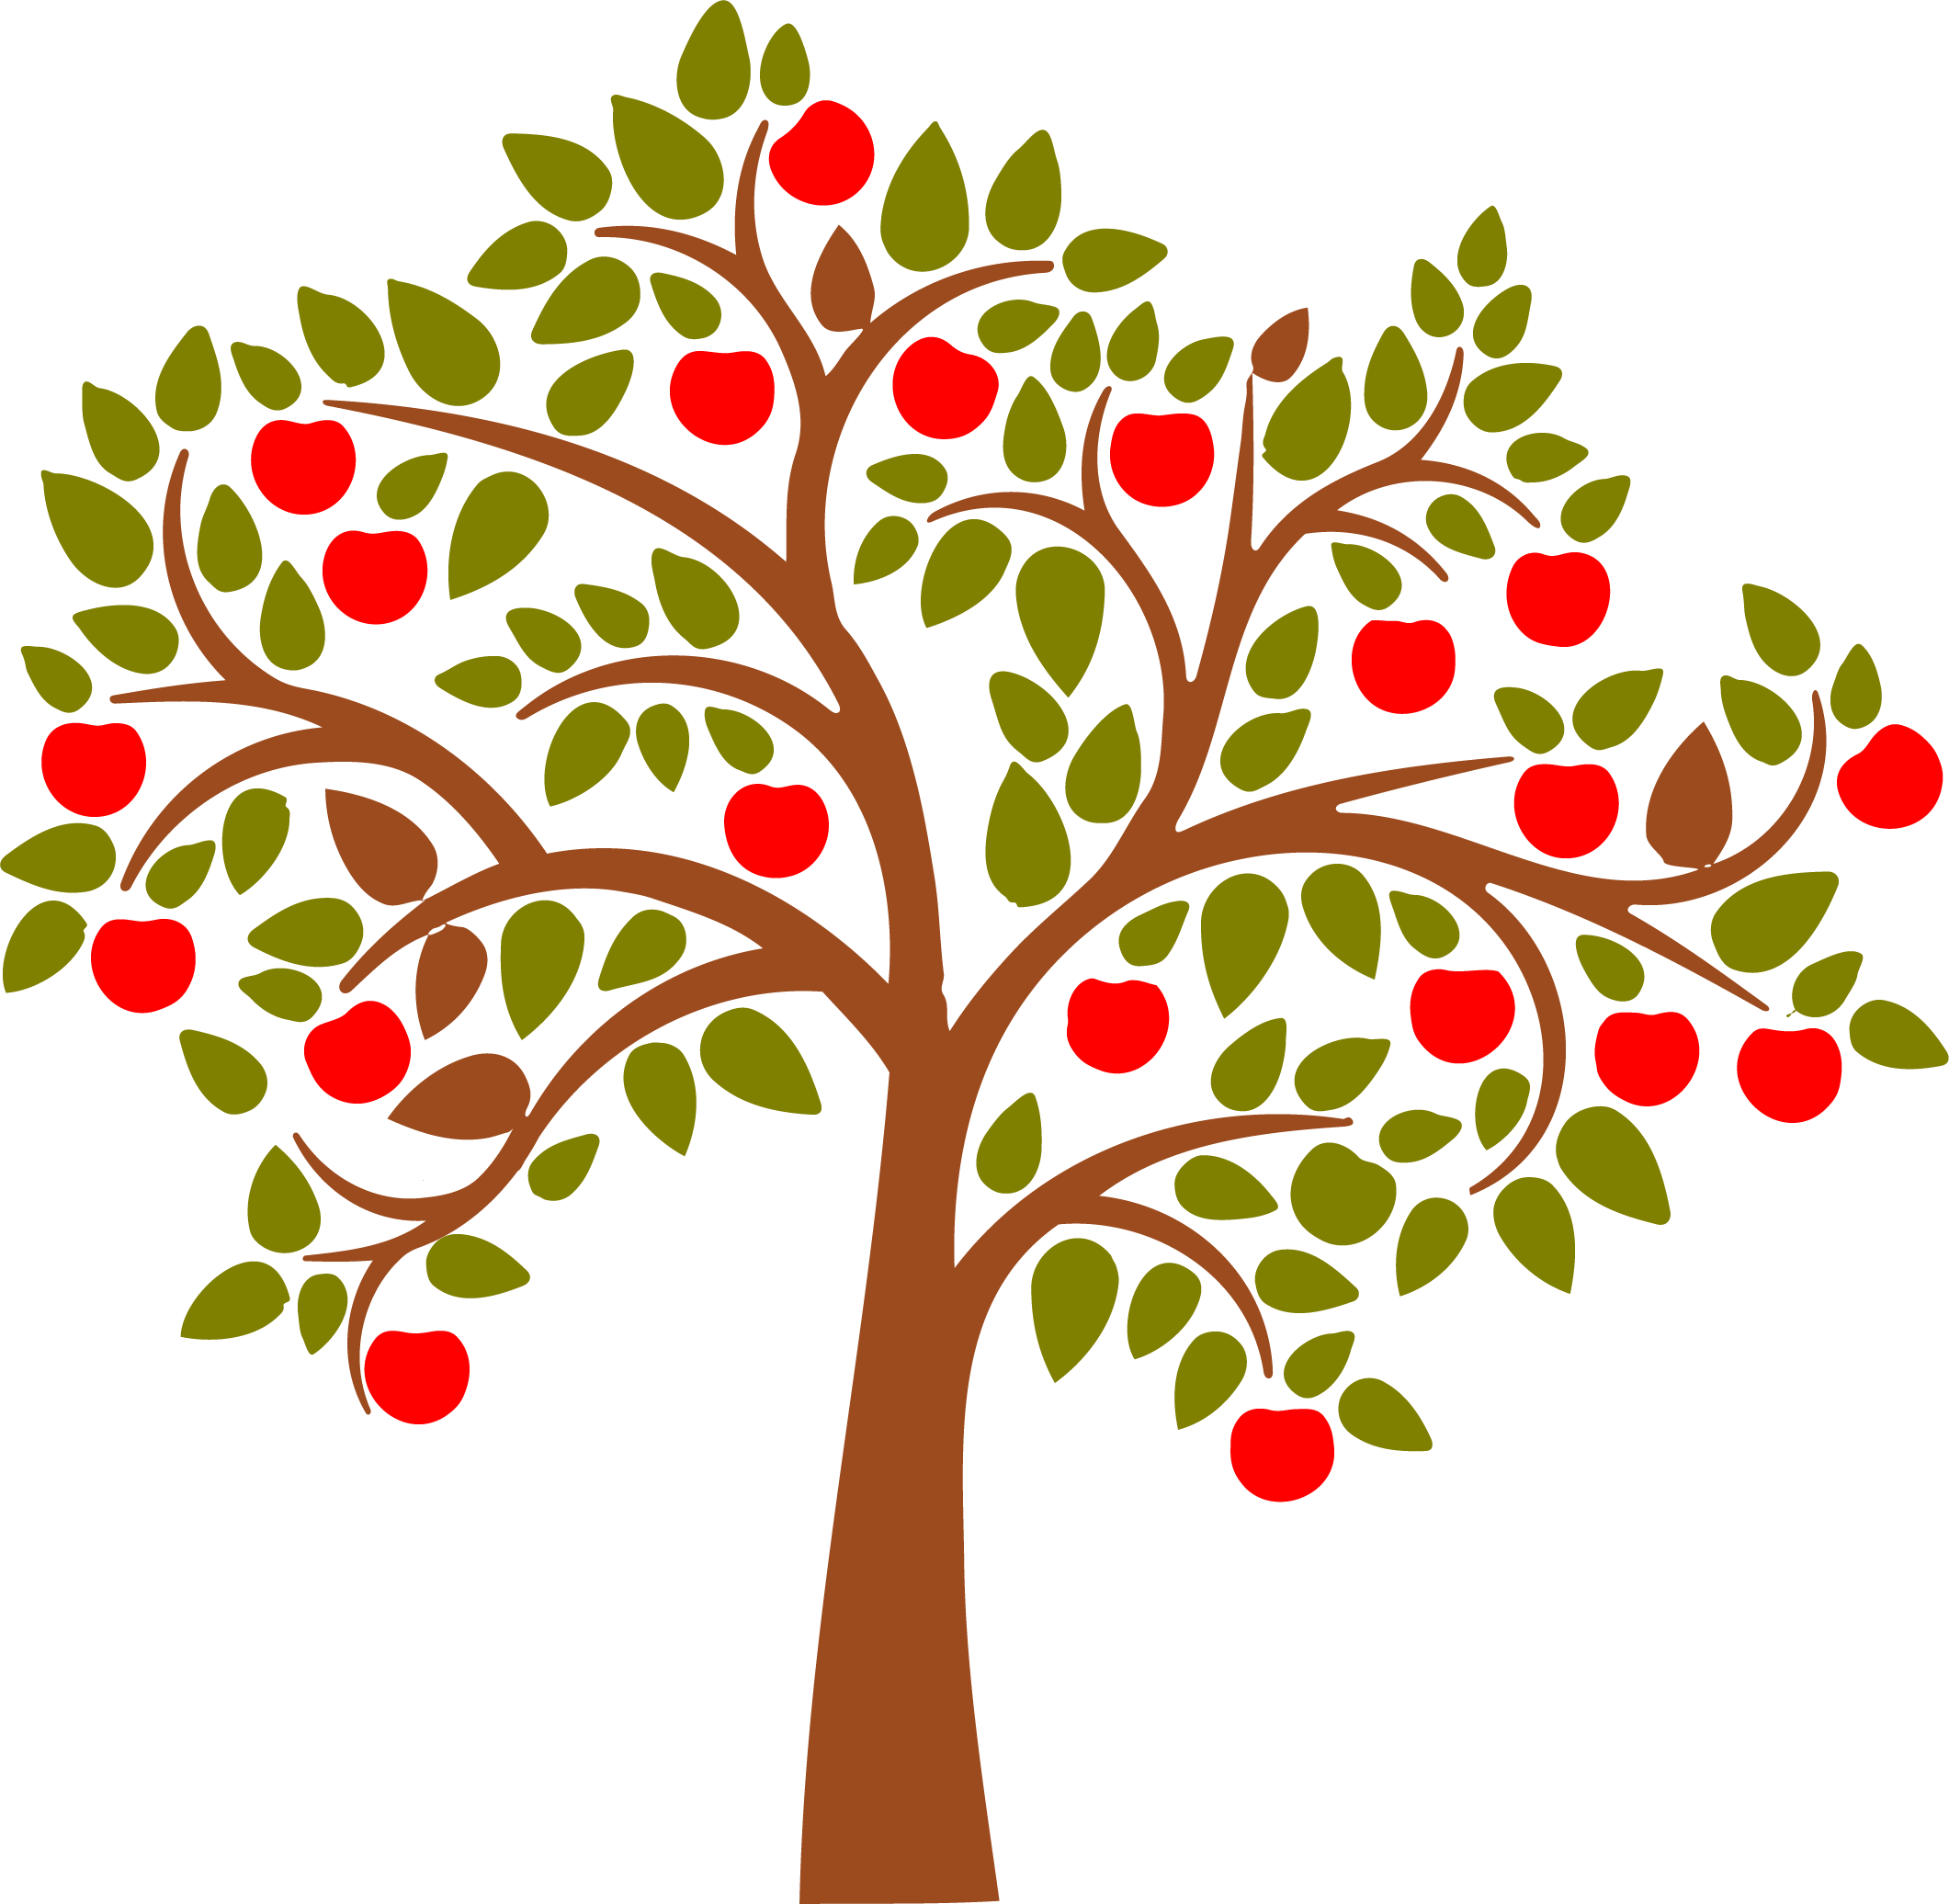 Apple Tree Png Free Use - Vintage apple tree svg free download - RR collections